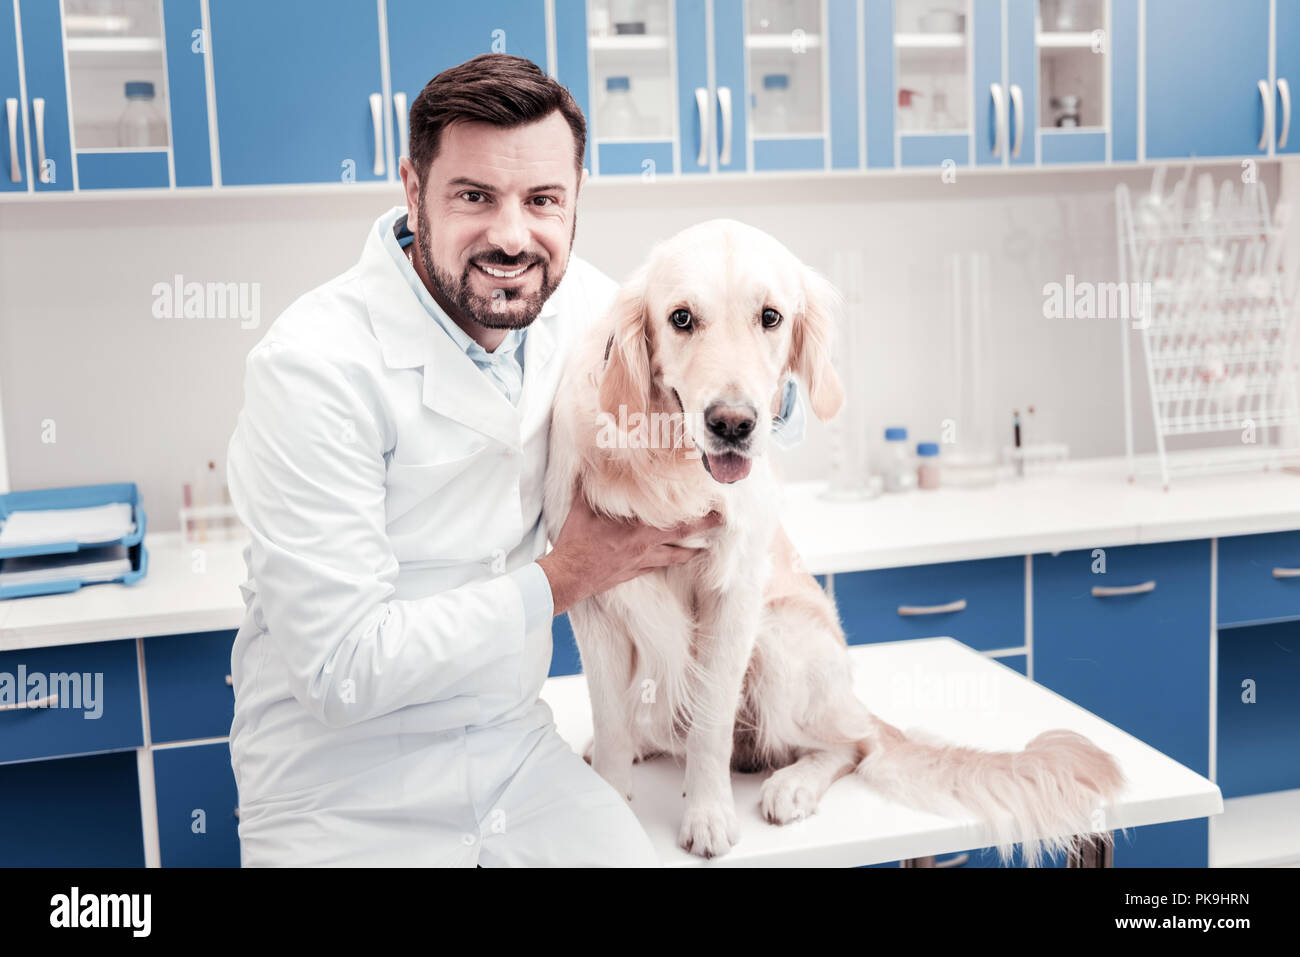 Attractive medical worker embracing calm dog - Stock Image